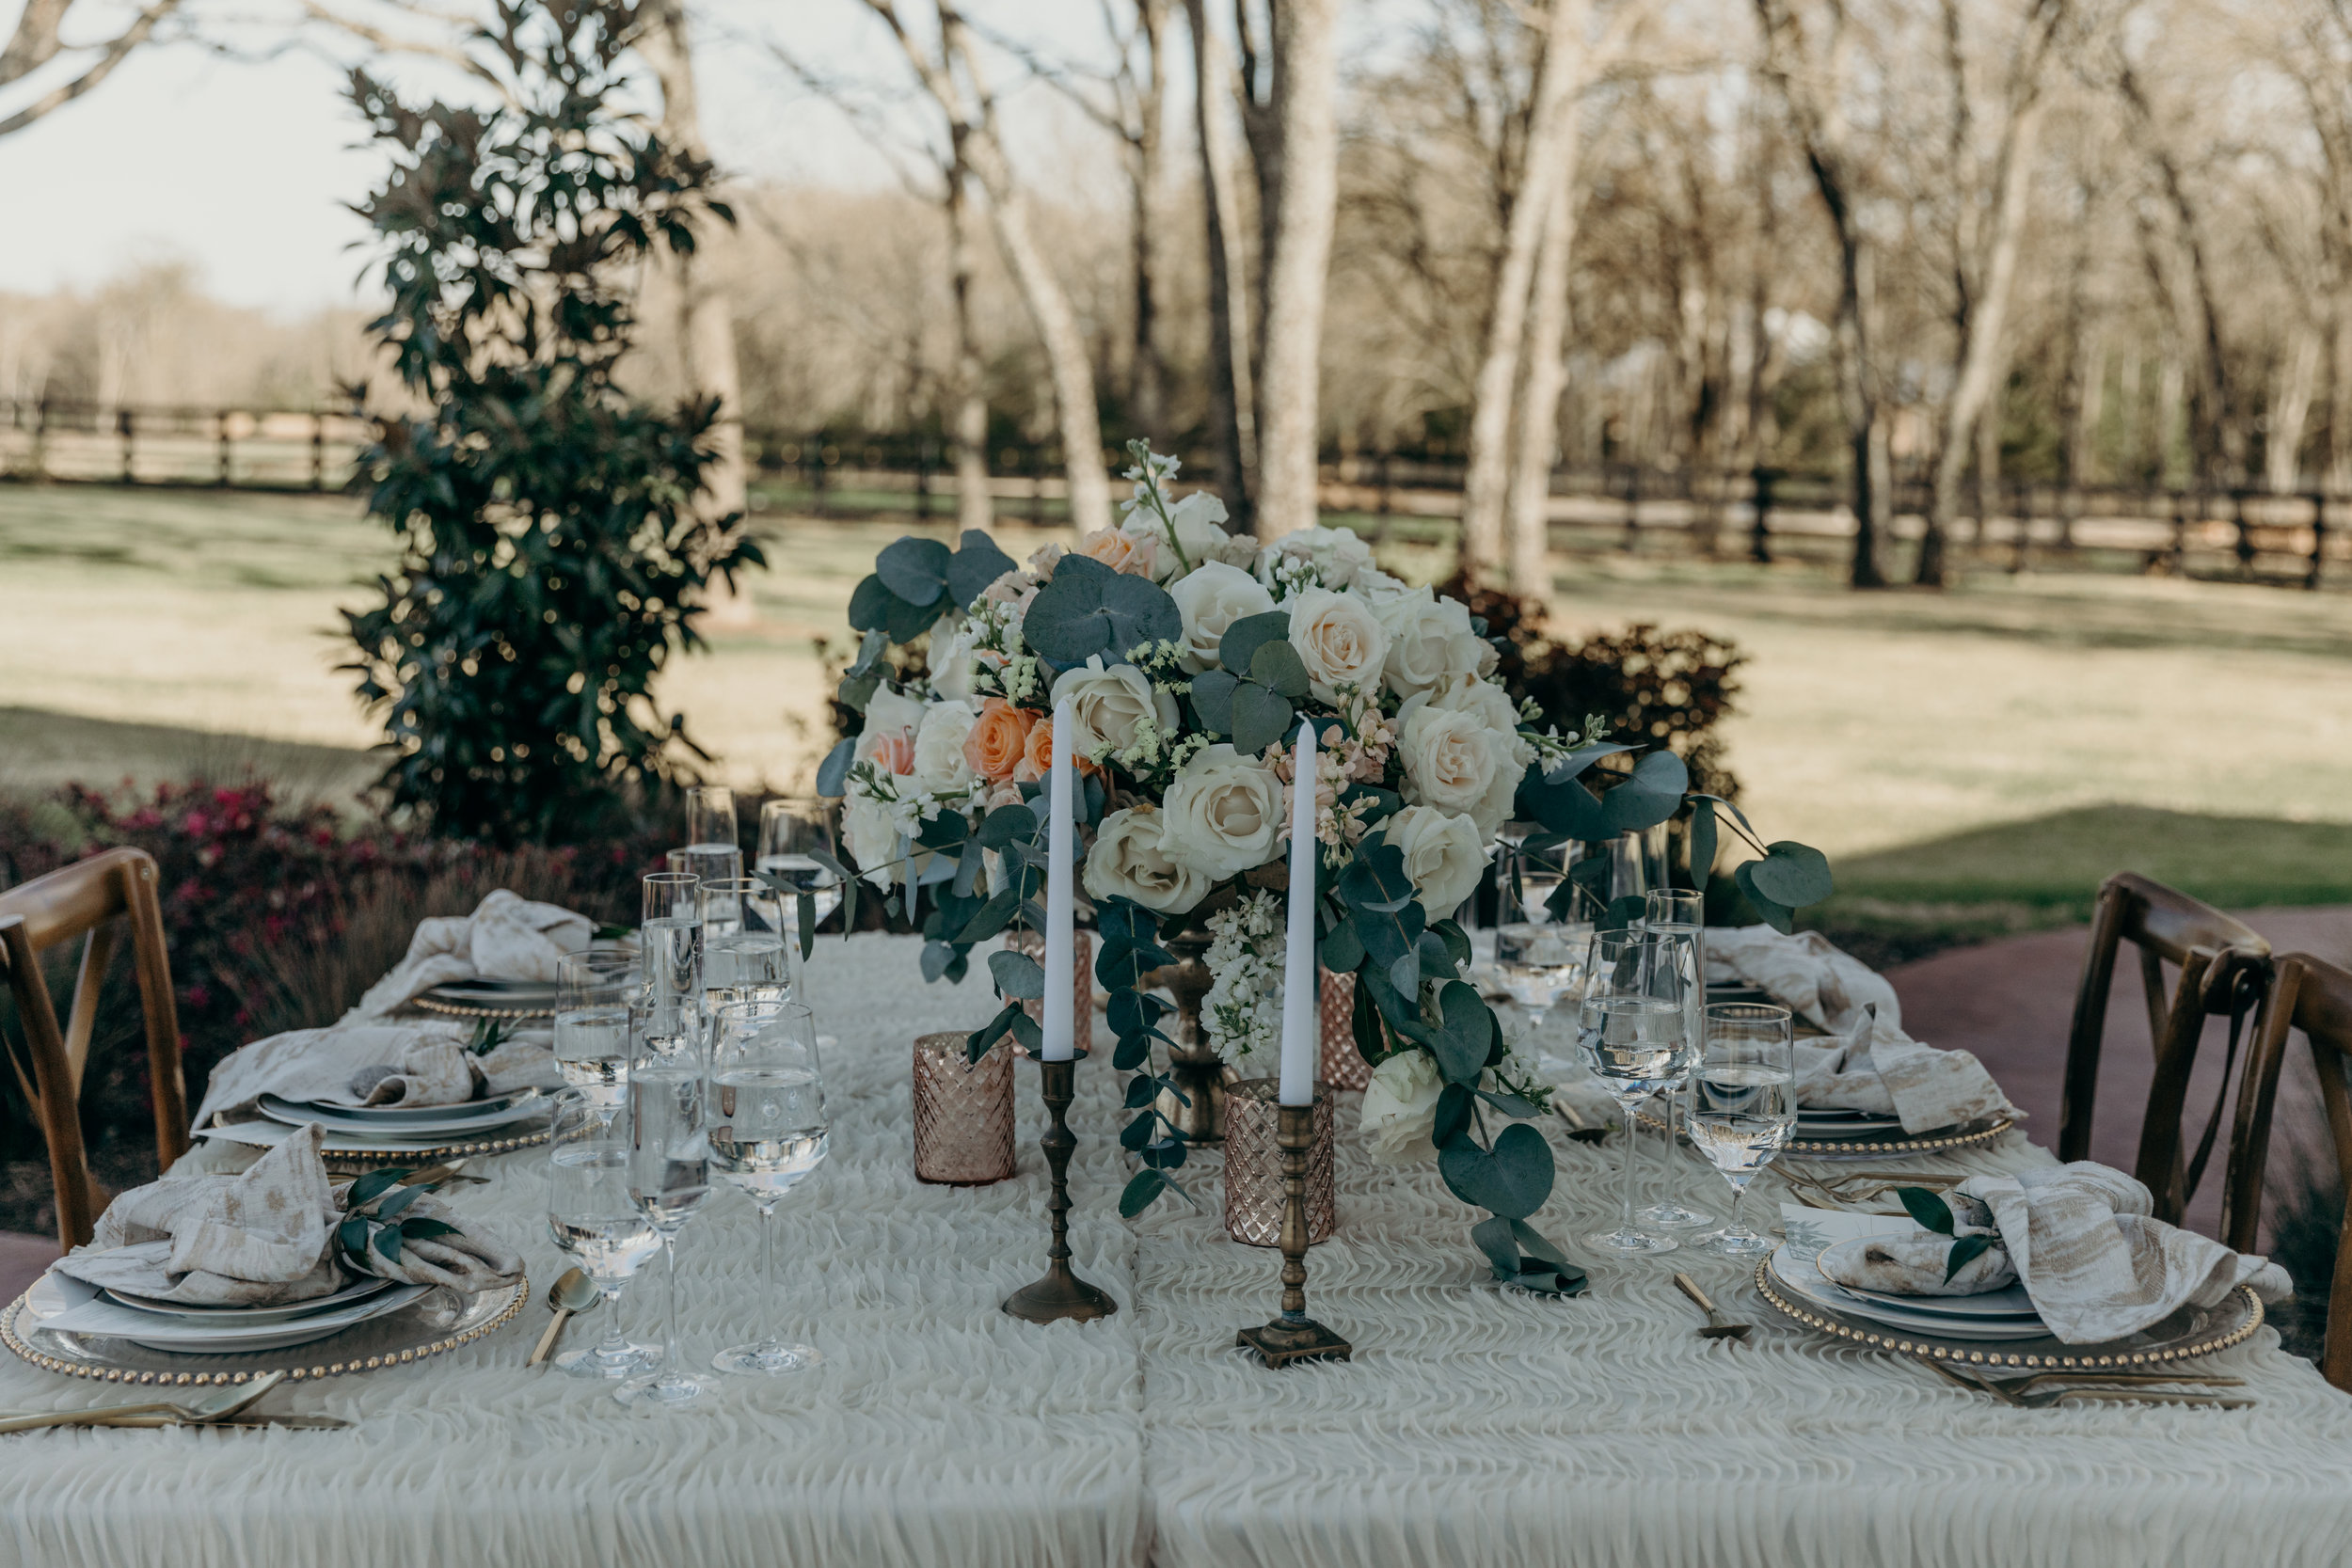 TheWhiteSparrowStyledWeddingShootinTexas-79.jpg